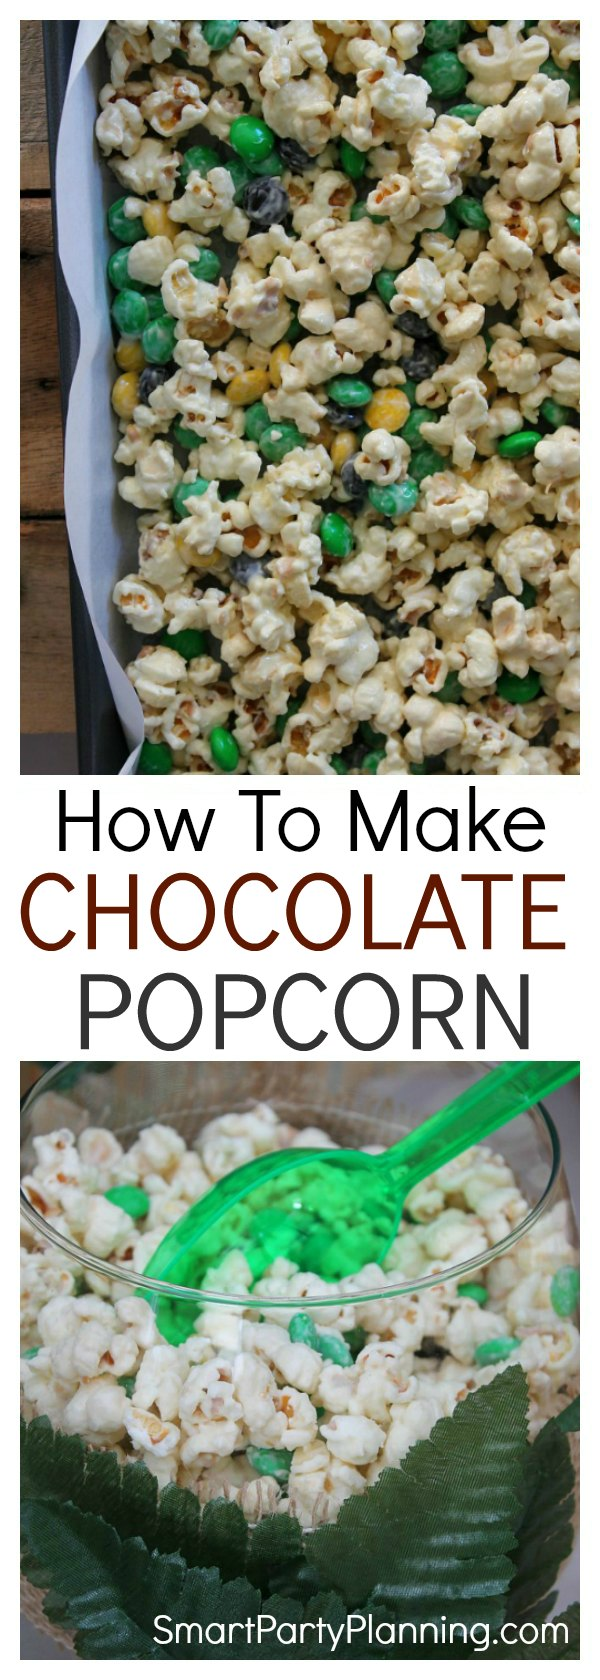 Learn how to make a chocolate popcorn recipe that will be a party favorite. This is one of those recipes that the adults will be fighting the kids over. It's simple and easy to make, tastes amazing and is the perfect finger food at kid's parties or a family movie night It's not healthy, but it is a lot of fun!